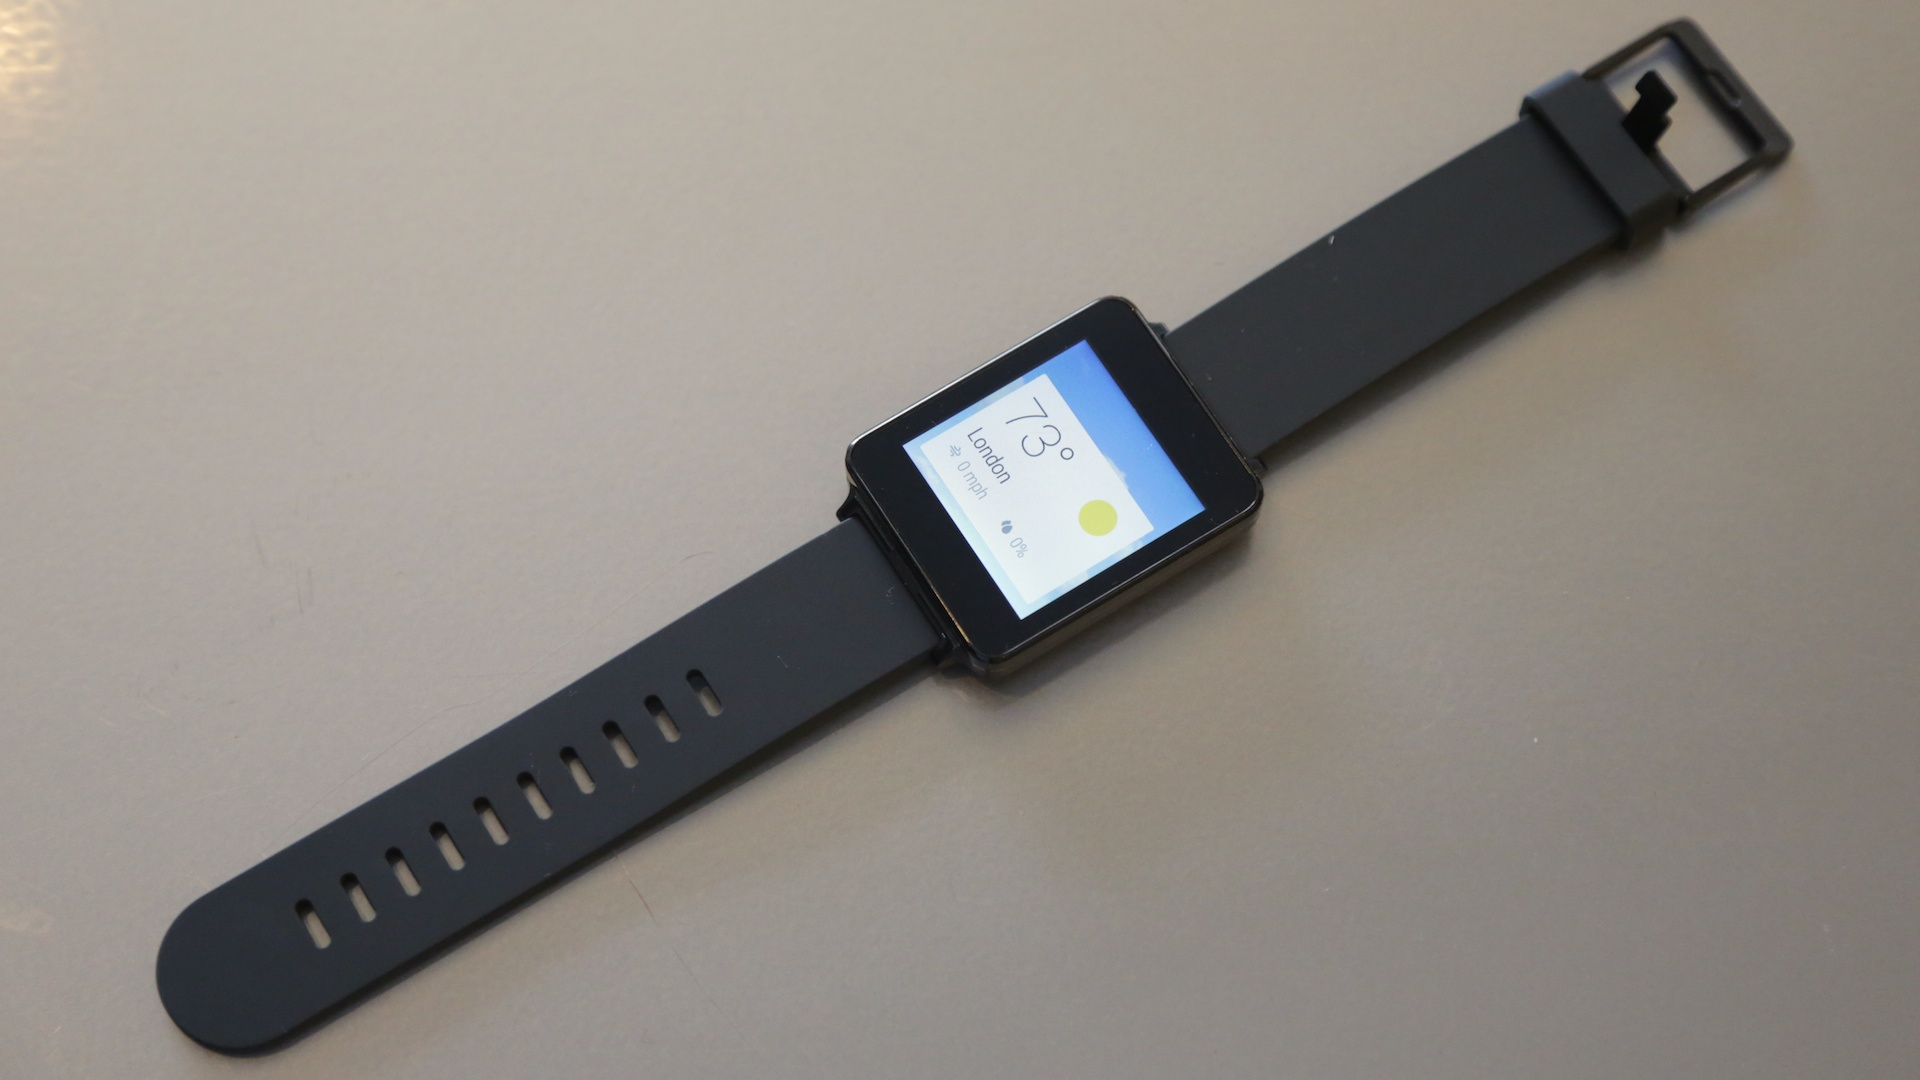 lg g watch hands-on (2)